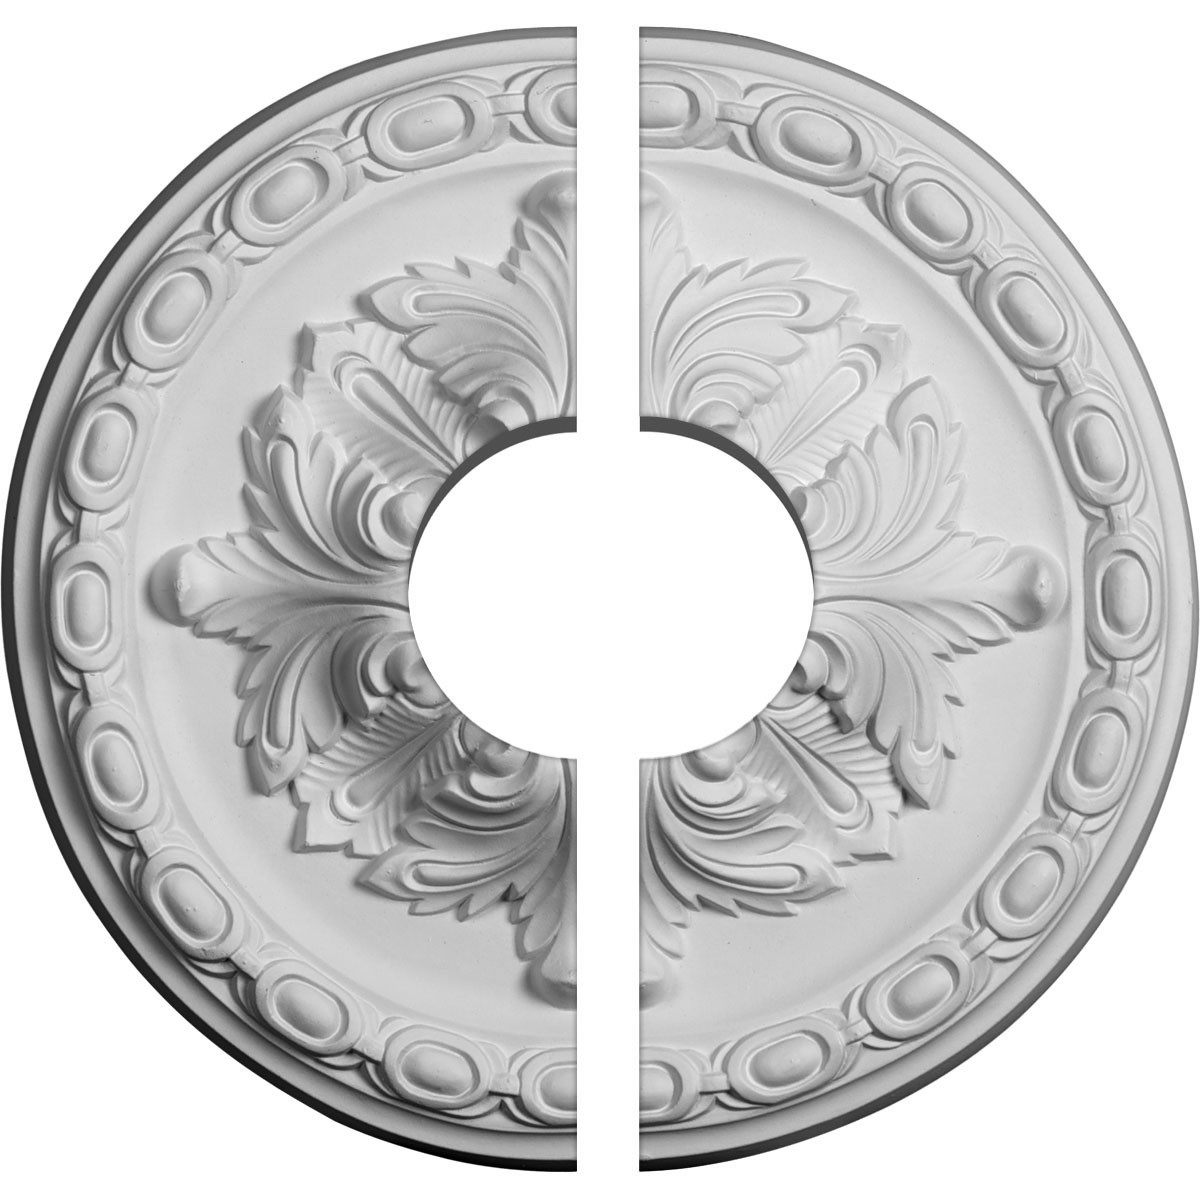 """EM-CM12ST2-03500 - 11 3/4""""OD x 3 1/2""""ID x 3/8""""P Stockport Ceiling Medallion, Two Piece (Fits Canopies up to 3 1/2"""")"""